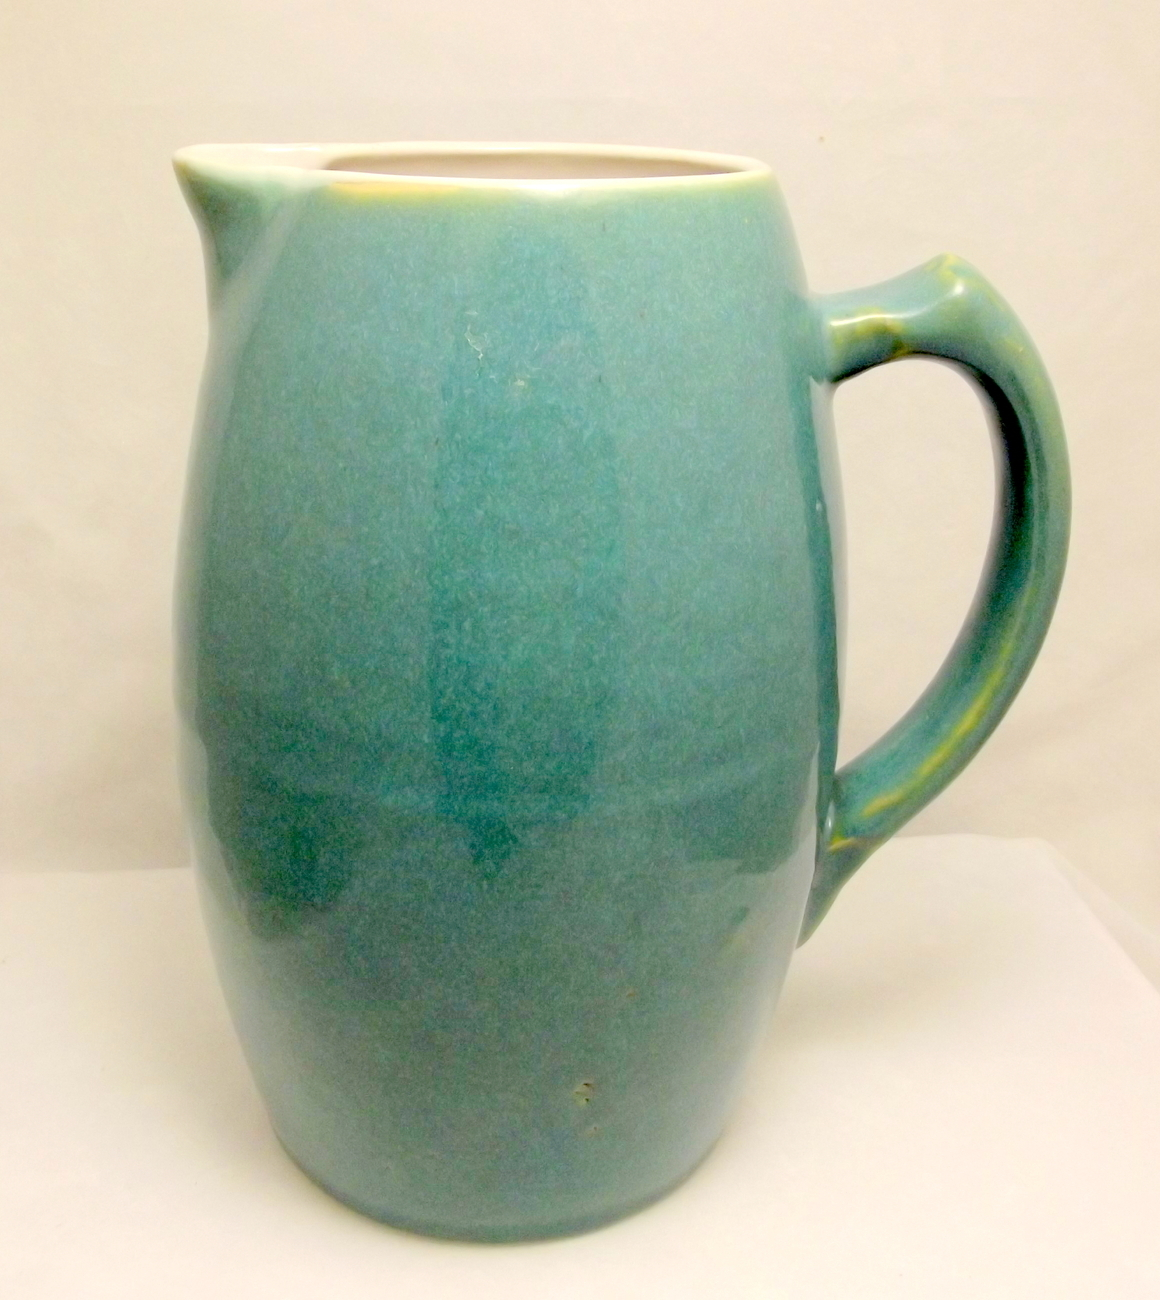 Water Pitcher Ceramic Vintage Early Uhl Pottery Water Pitcher Turquoise Green